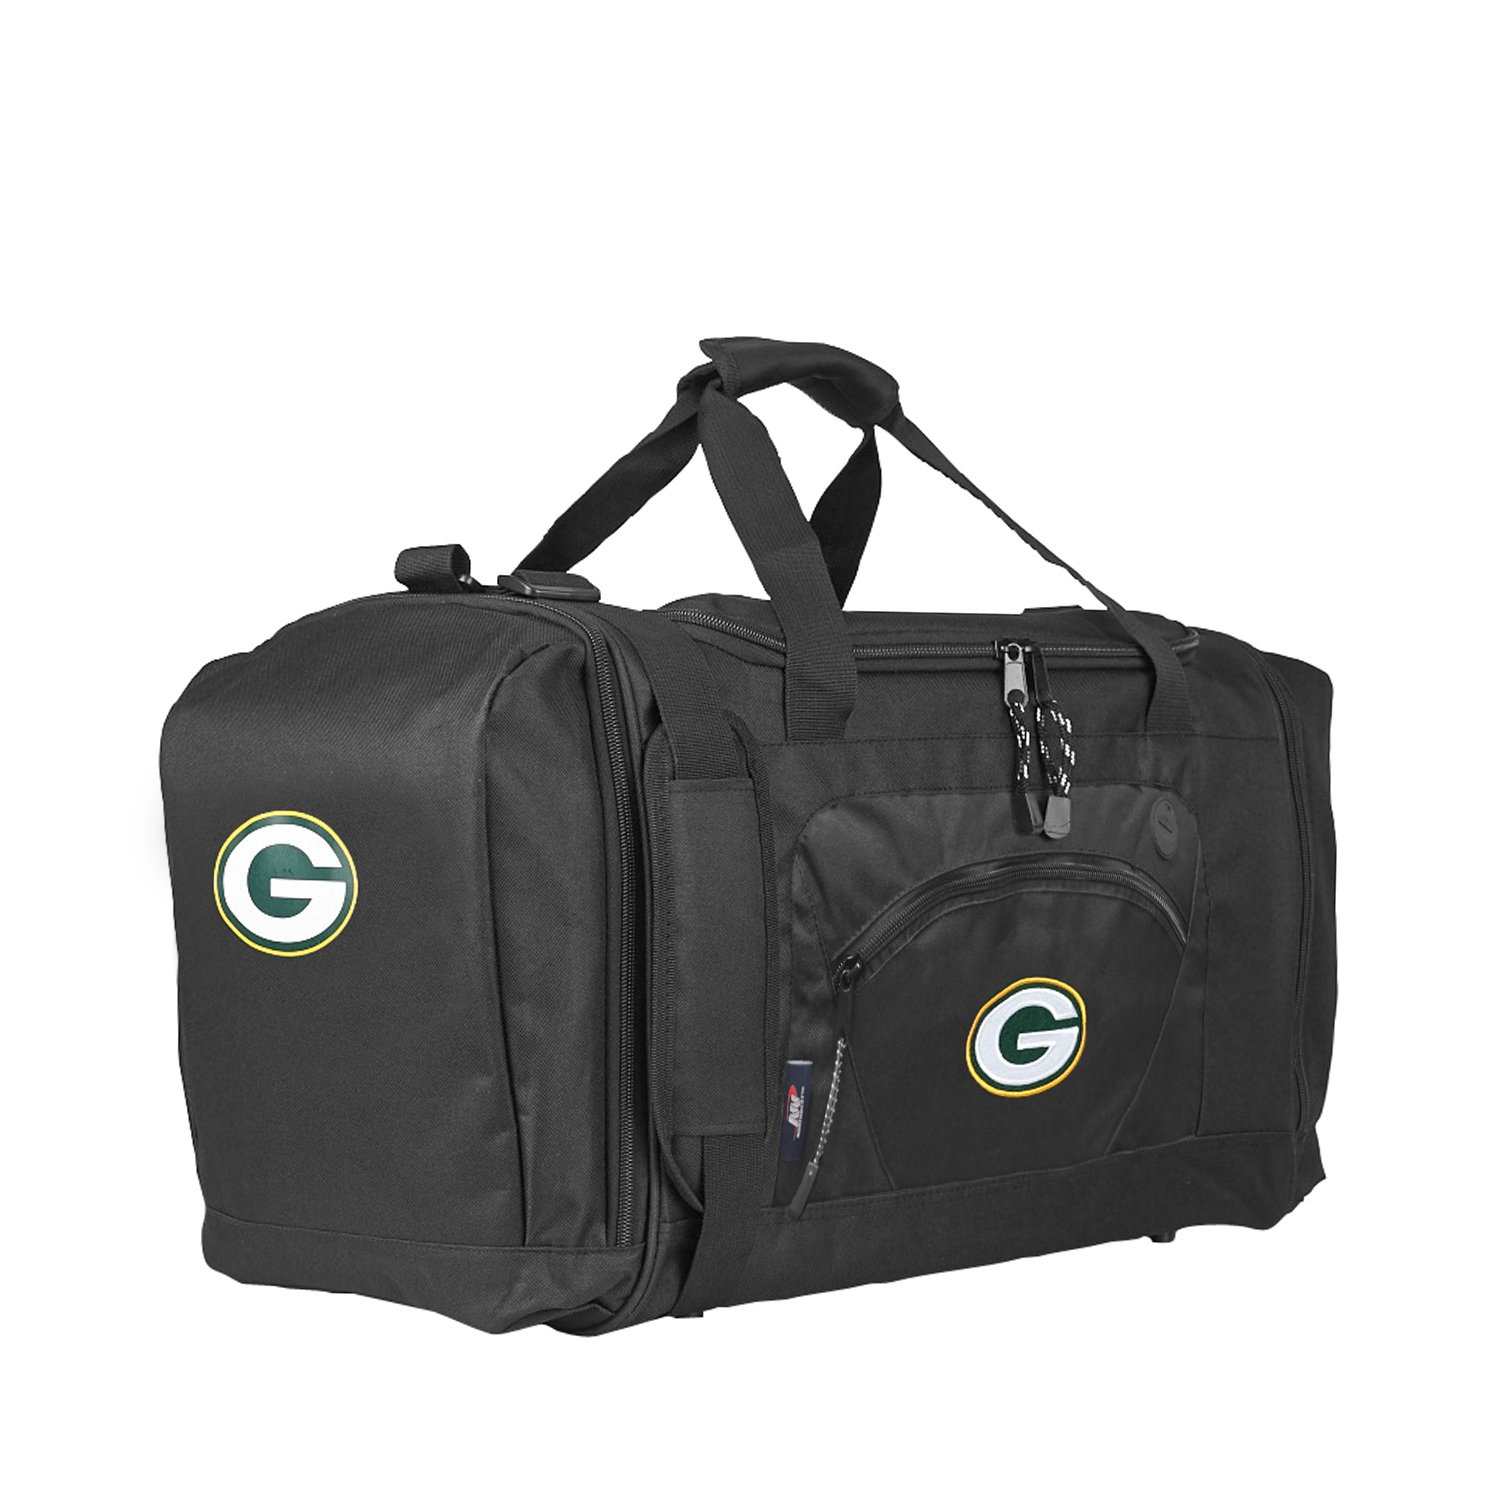 The Northwest Company Officially Licensed NFL Green Bay Packers Unisex ''Roadblock'' Duffel Bag, Black